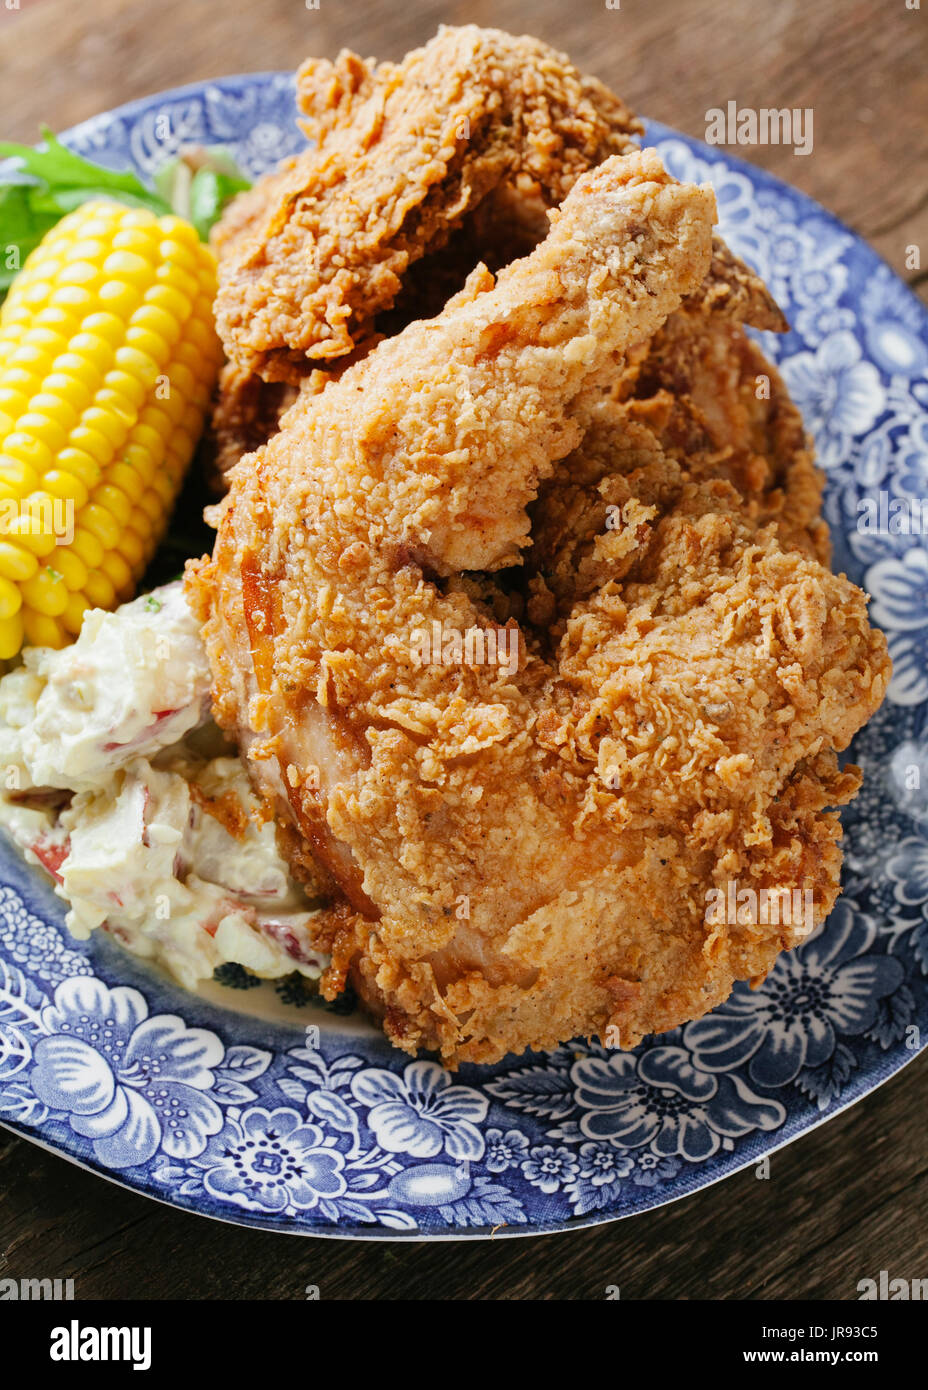 Buttermilk fried chicken with corn and potato salad on a blue plate - Stock Image